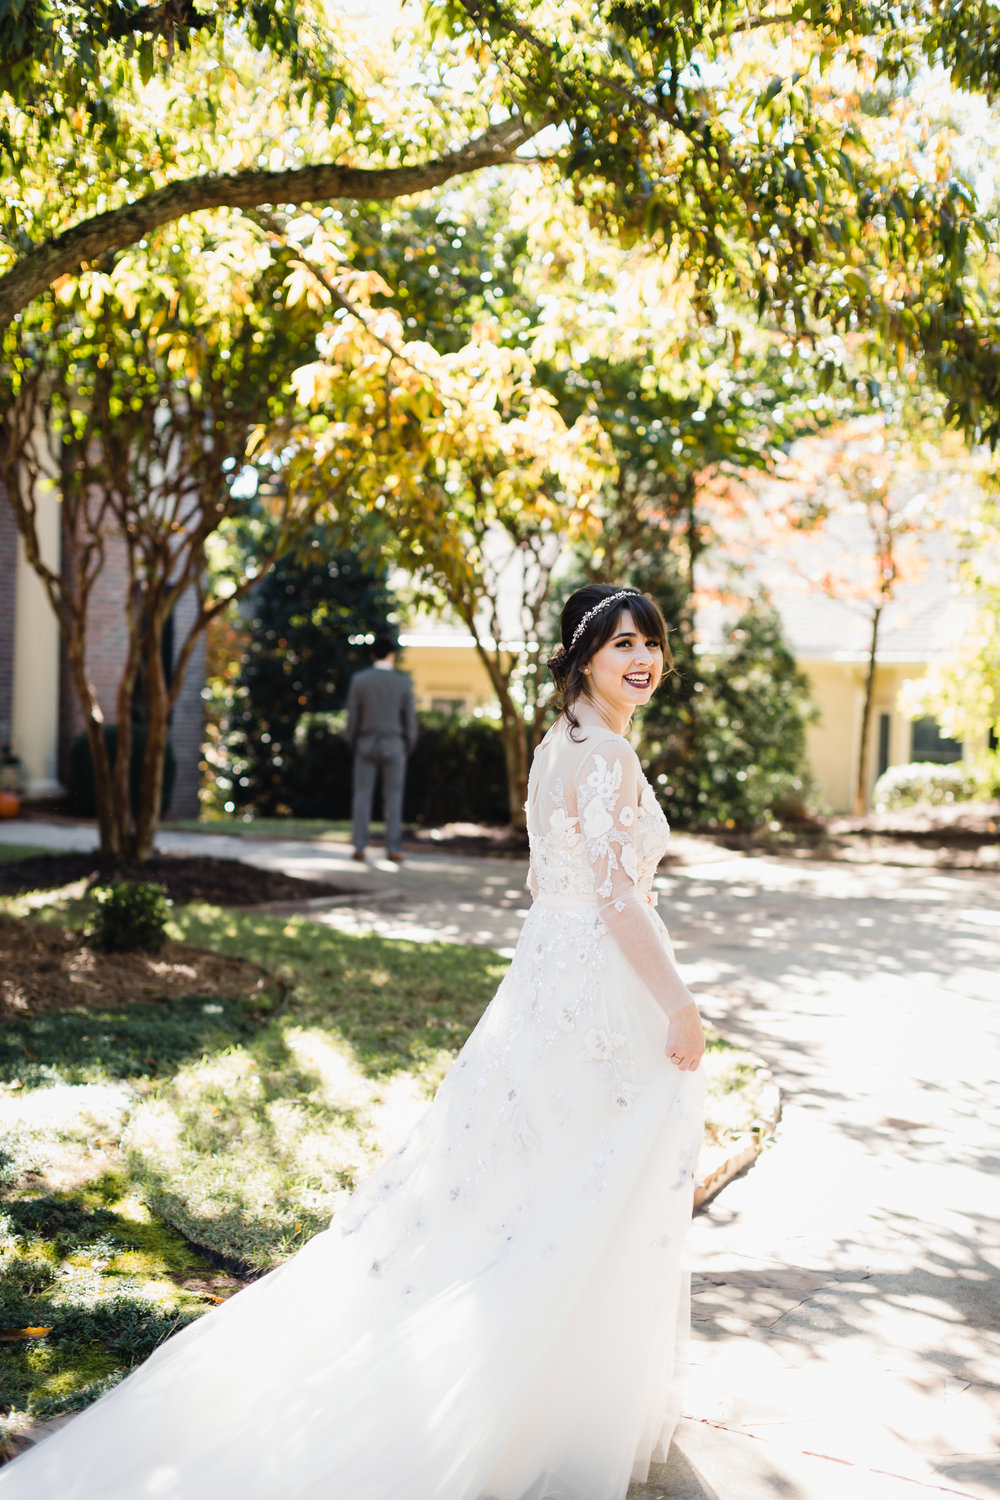 Gianna Keiko Atlanta NY Brooklyn Wedding Photographer.jpg